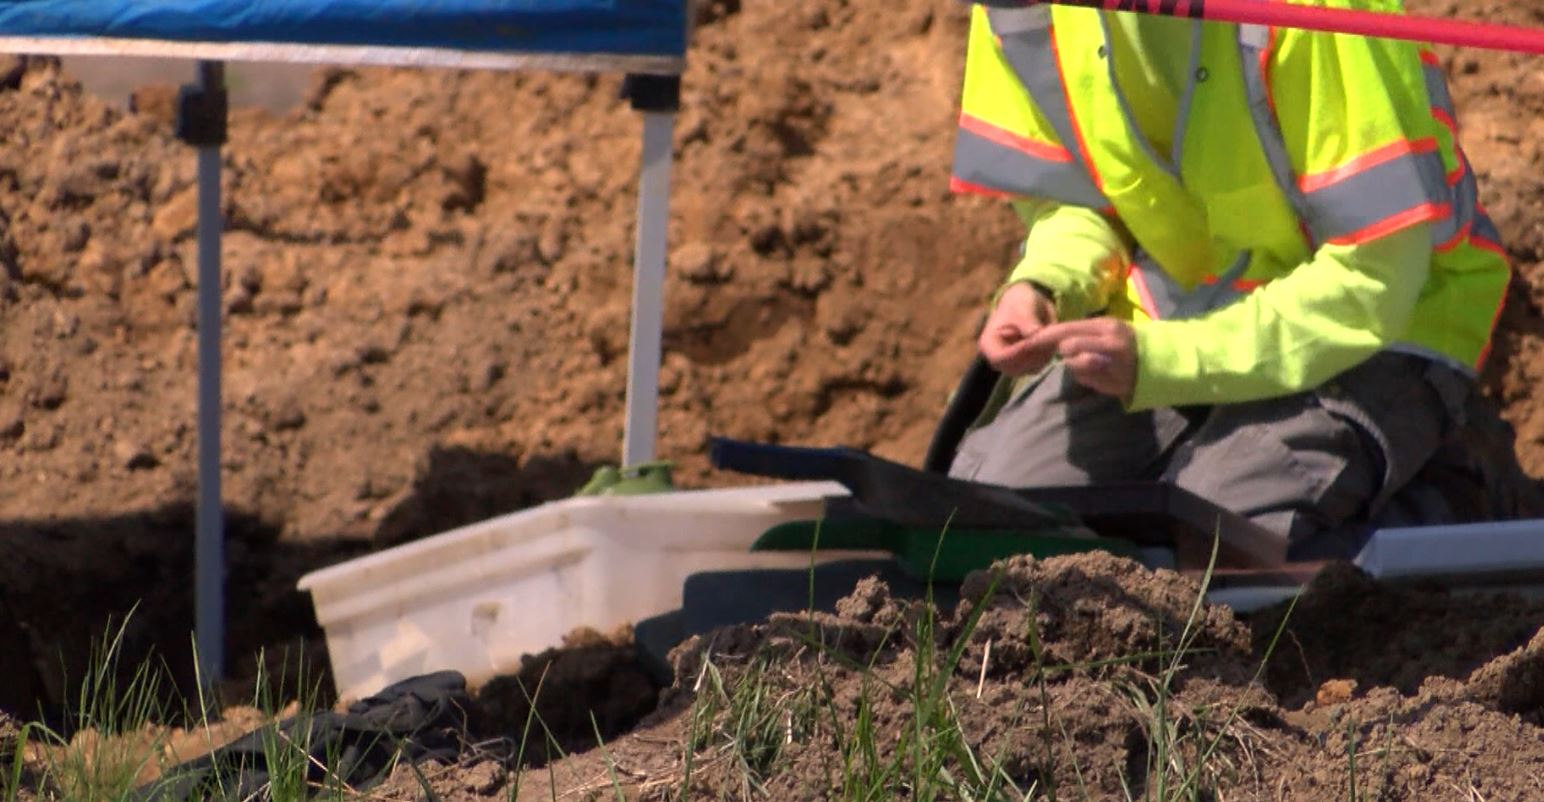 8 Bodies Exhumed From Tri-State Farm  - 44News | Evansville, IN